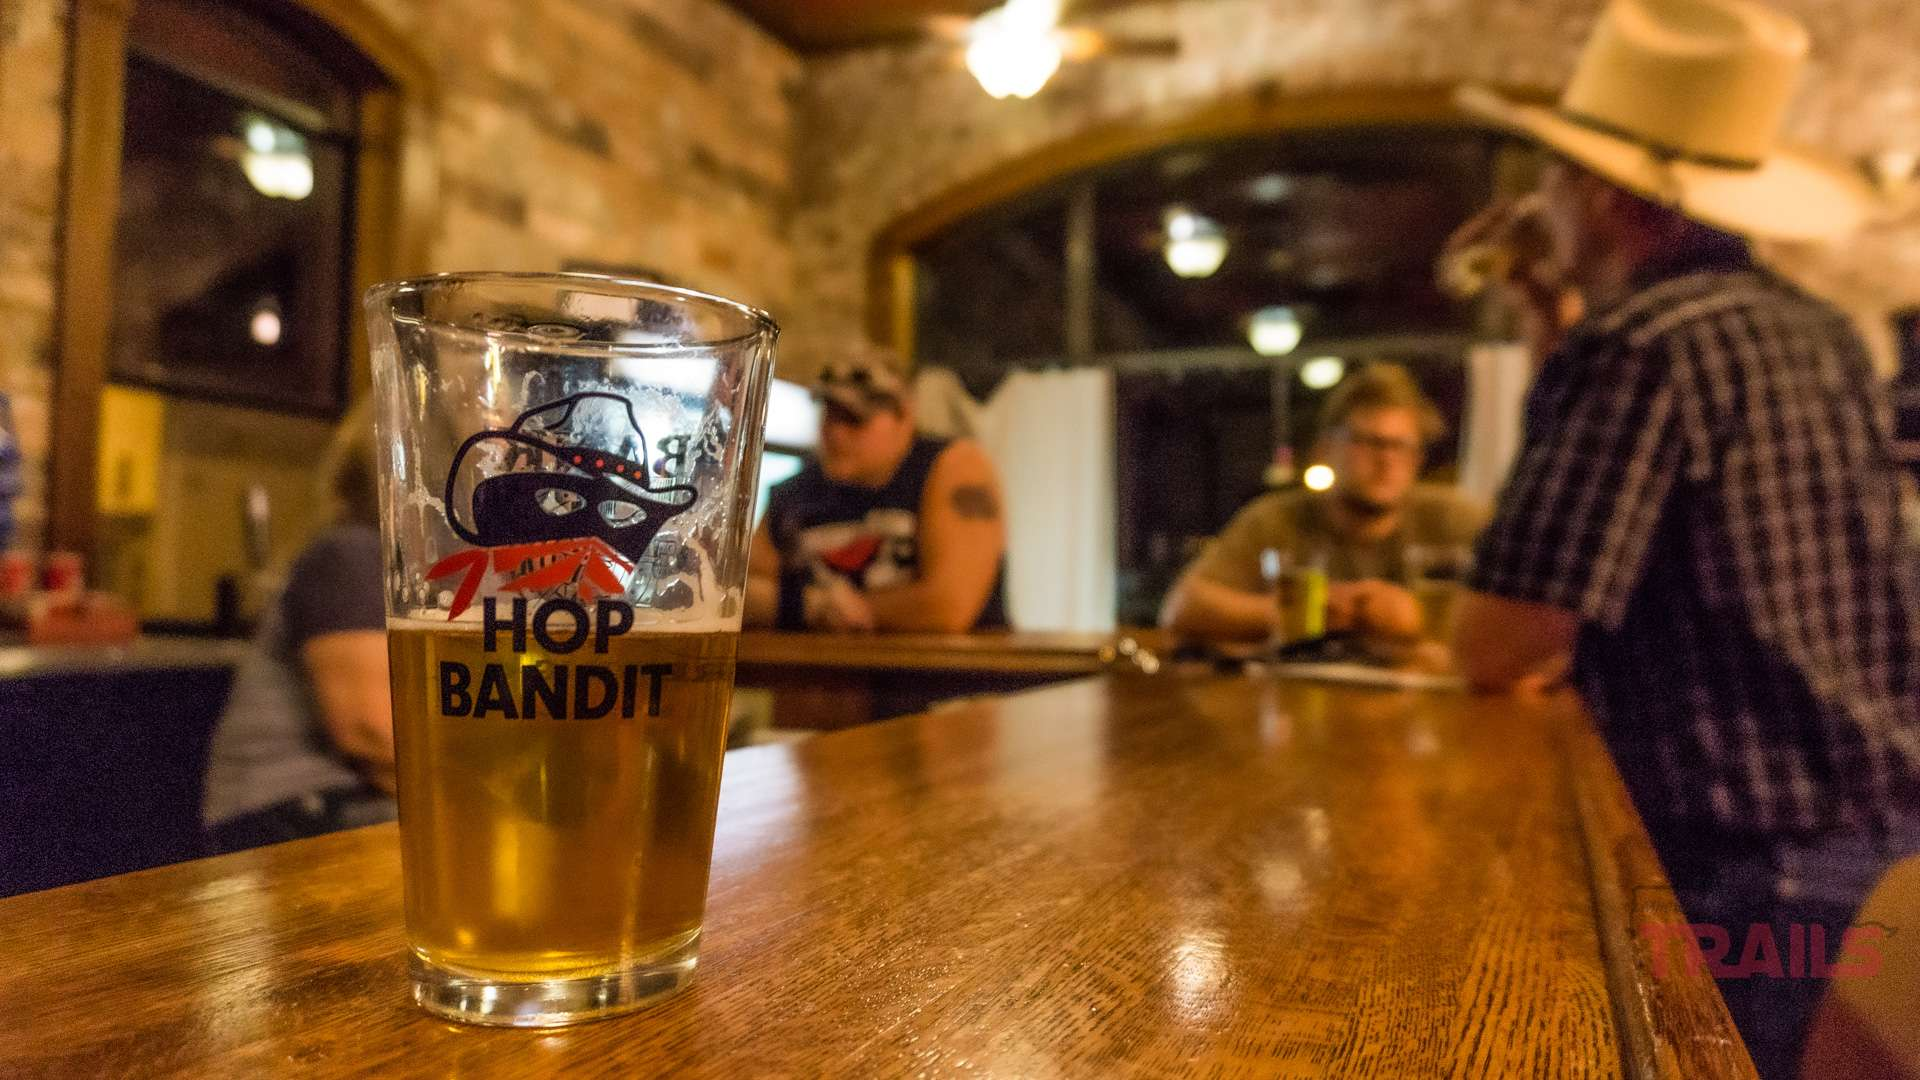 A pint of Hop Bandit Beer at Bank Brewing